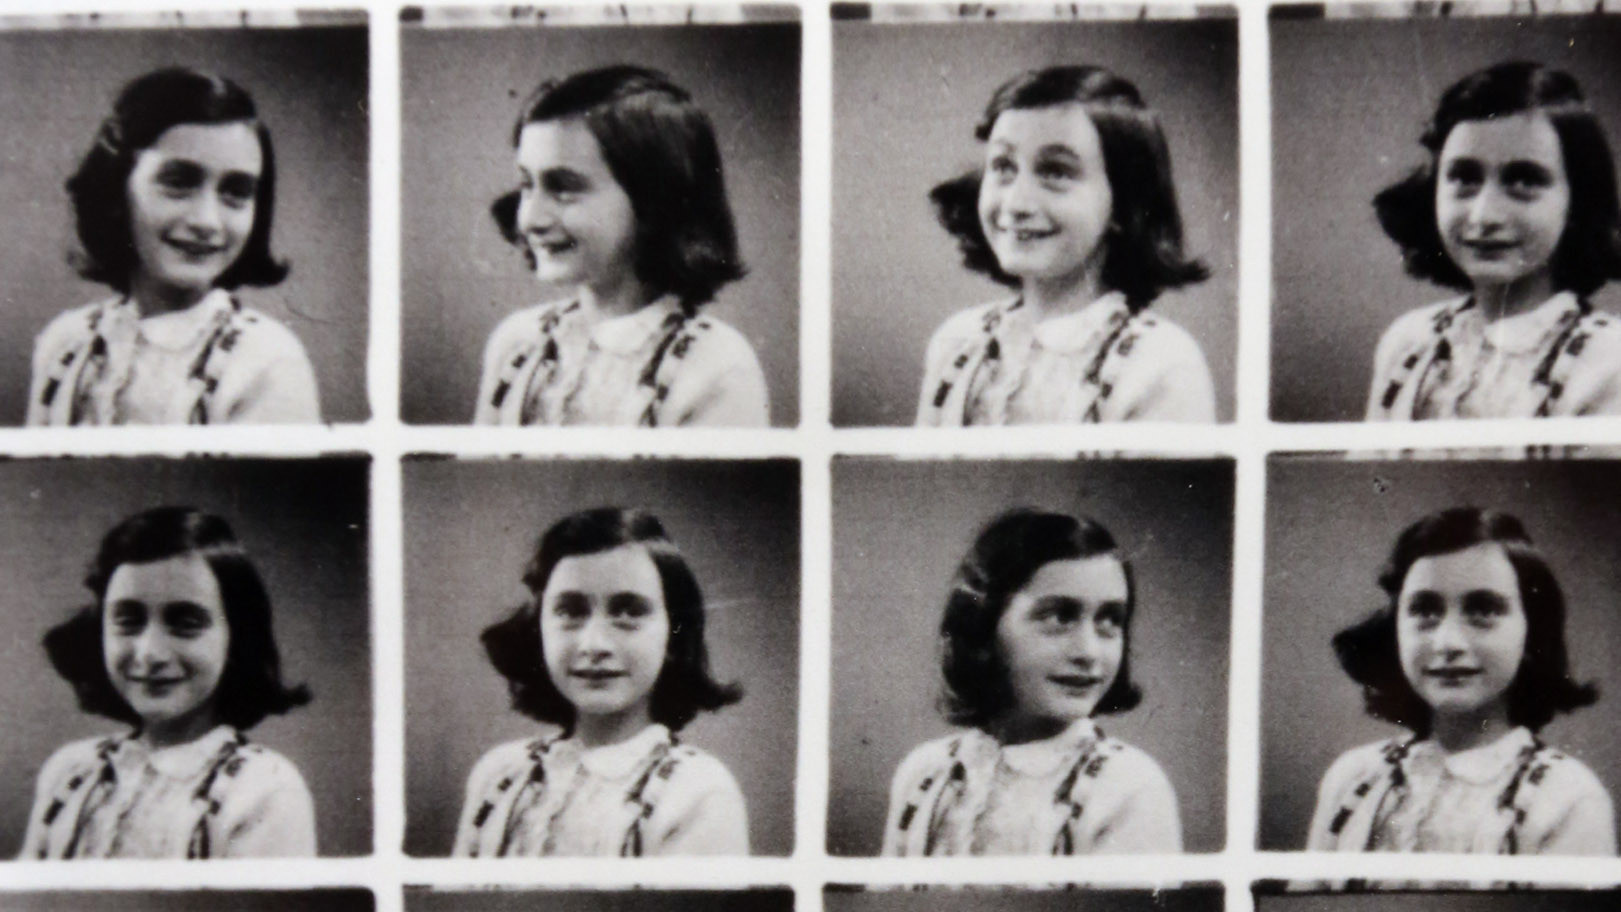 an analysis of the book anne frank the diary of a young girl written by anne frank Anne frank: the diary of a young girl by anne frank (c)2015 bookrags, inc analysis although written by a thirteen-year-old girl, anne's diary is significant because it describes what life was like for jews during hitler's reign.